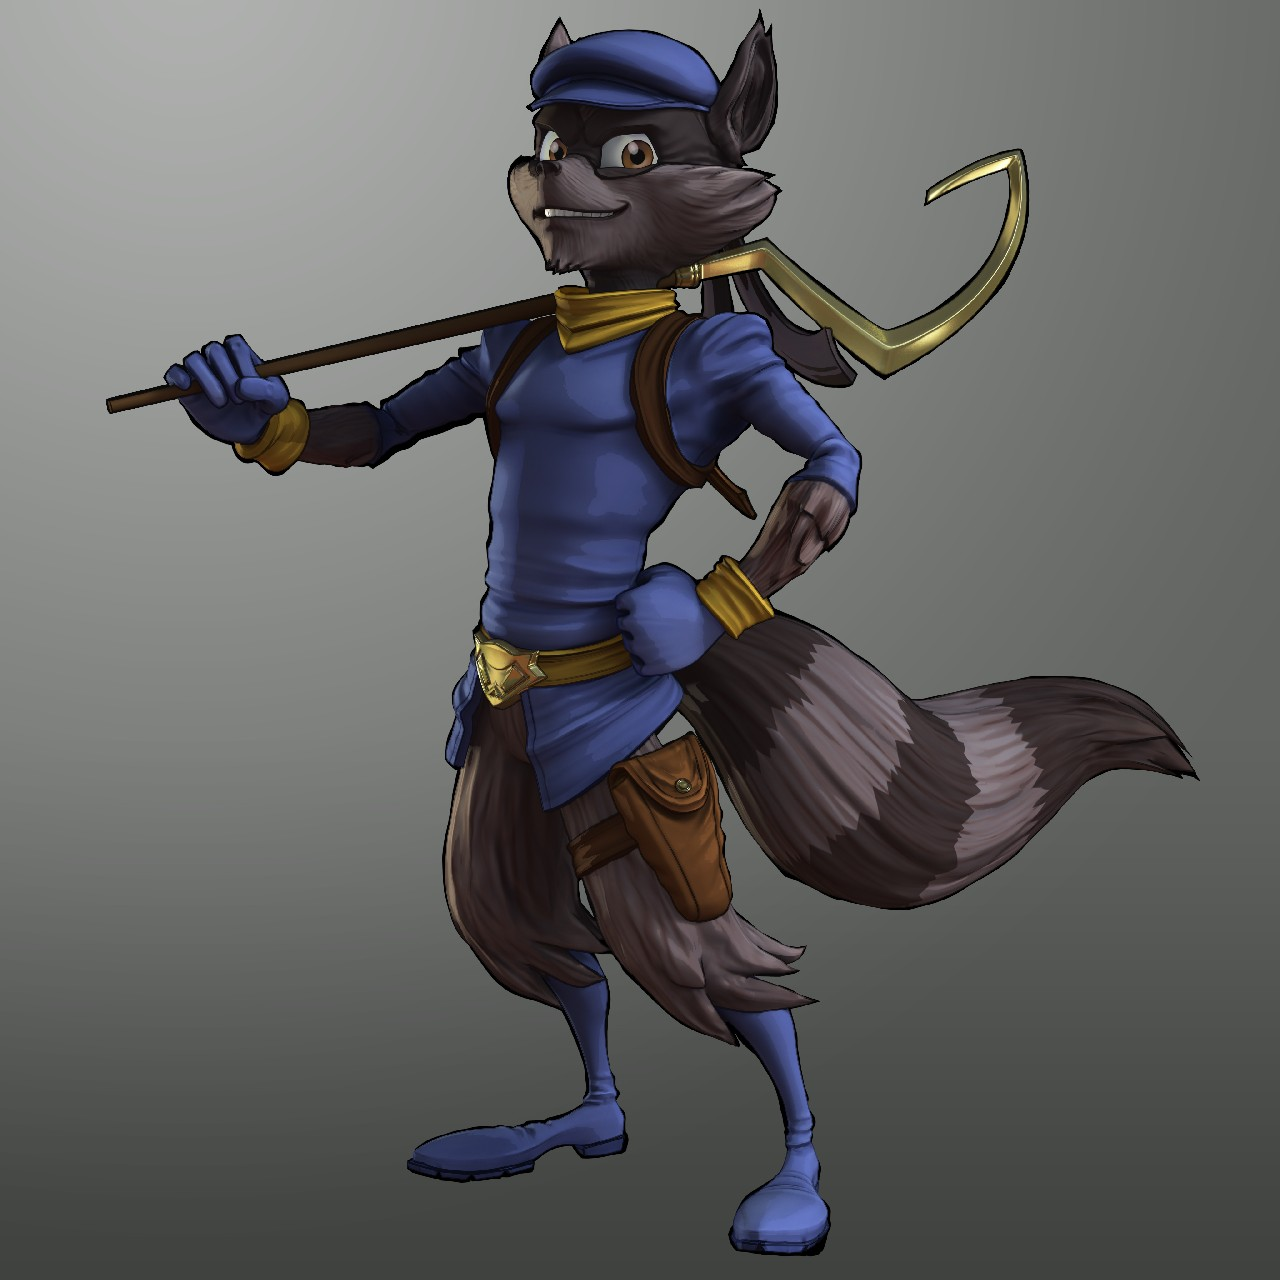 Sly cooper thieves in time 5 18 12